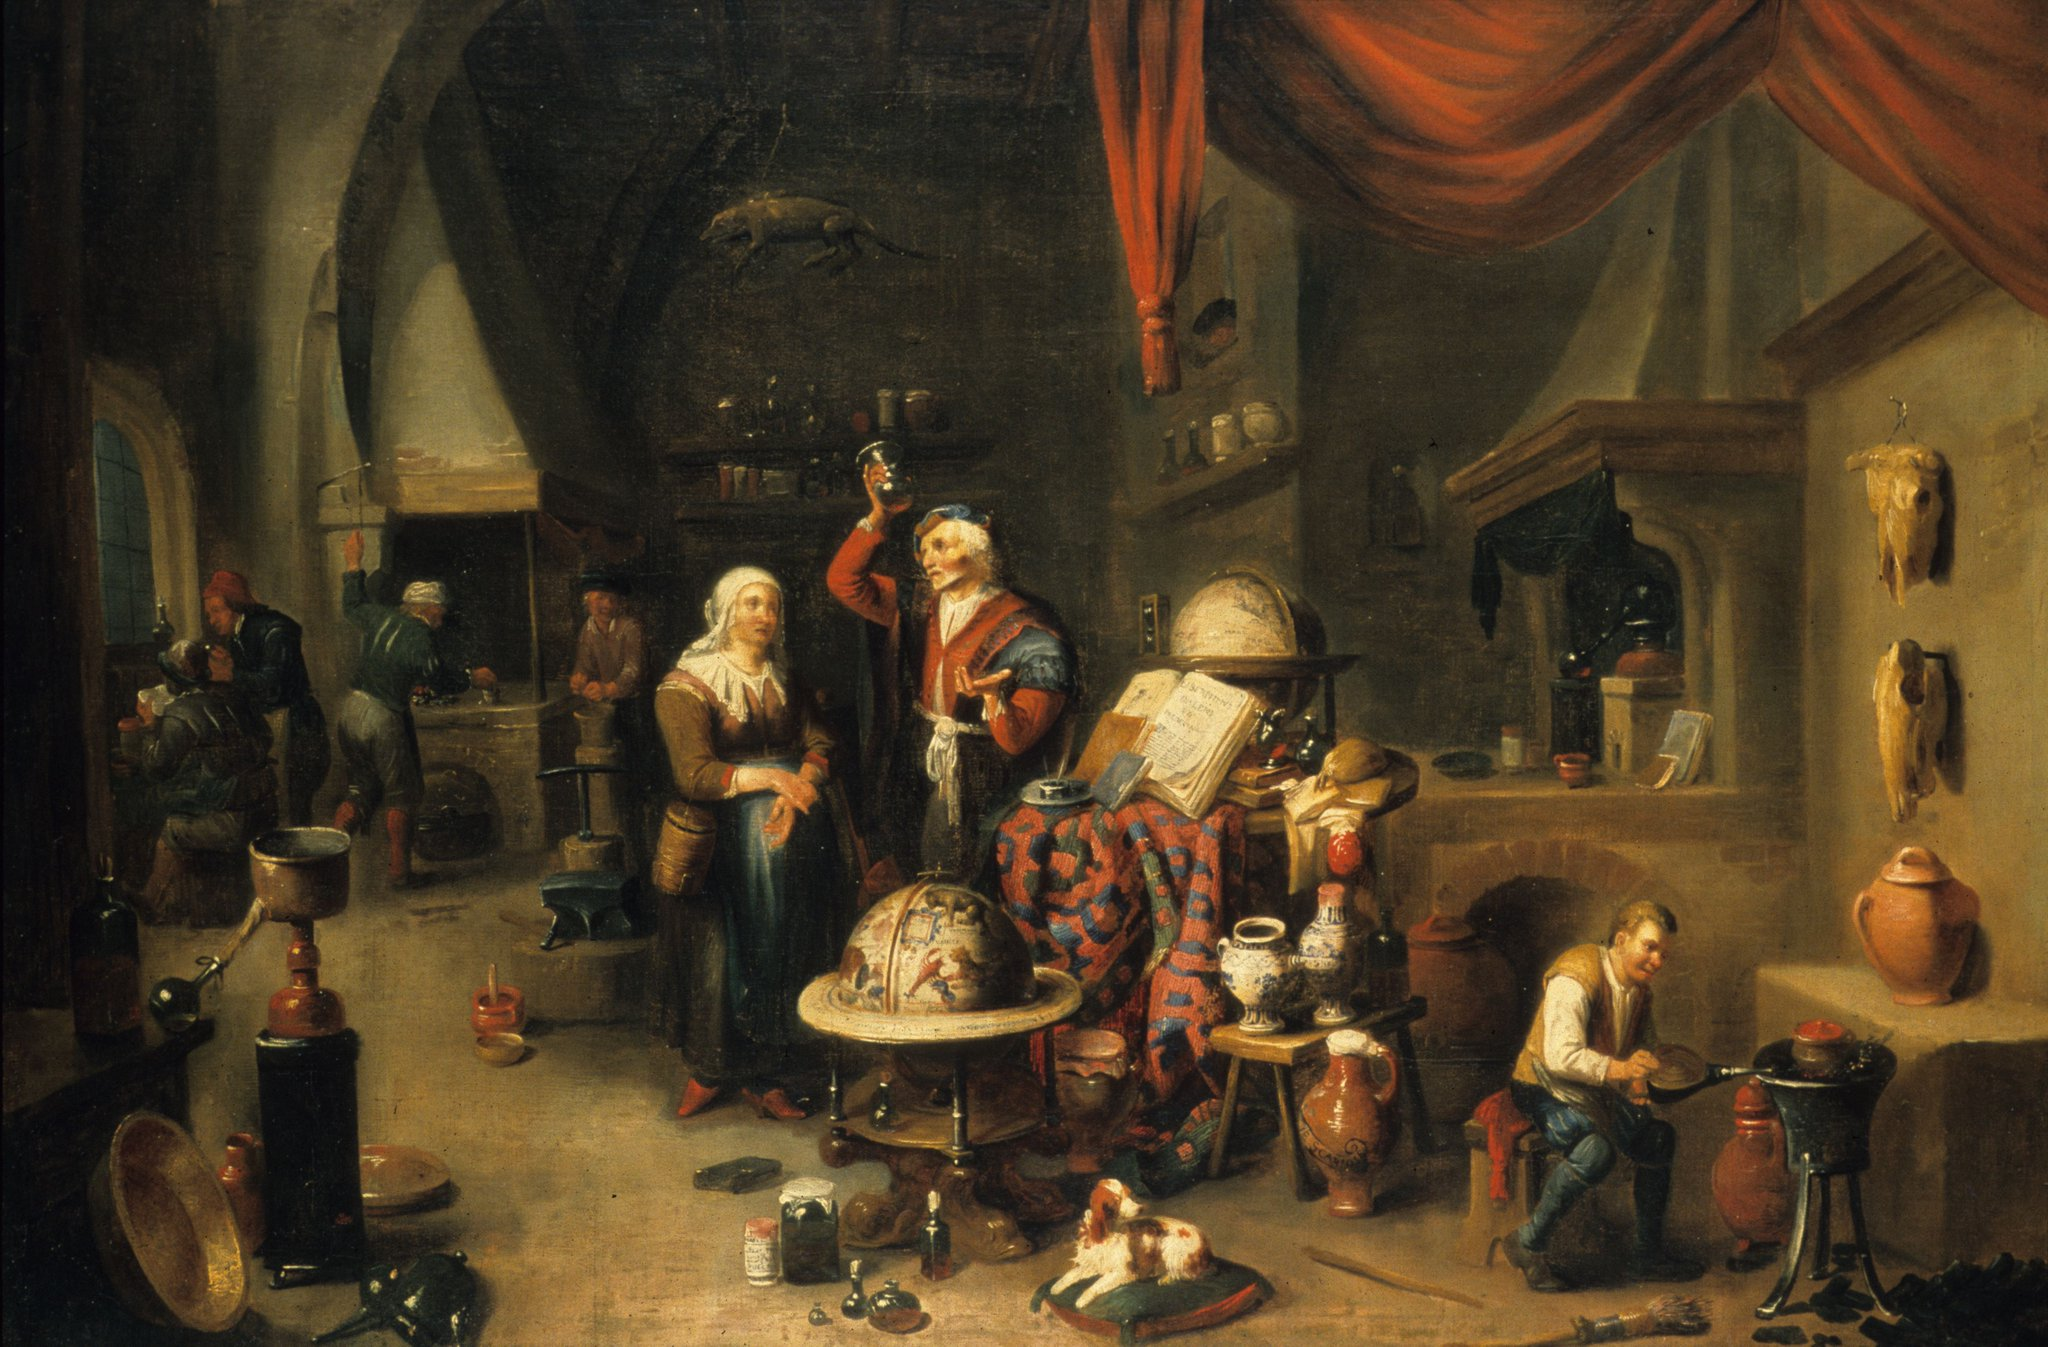 In Dutch&Flemish art, a whole genre arose that depict male doctors examining the urine of female patients #MuseumMonday #WomensHistoryMonth https://t.co/aTdY5RN9fL